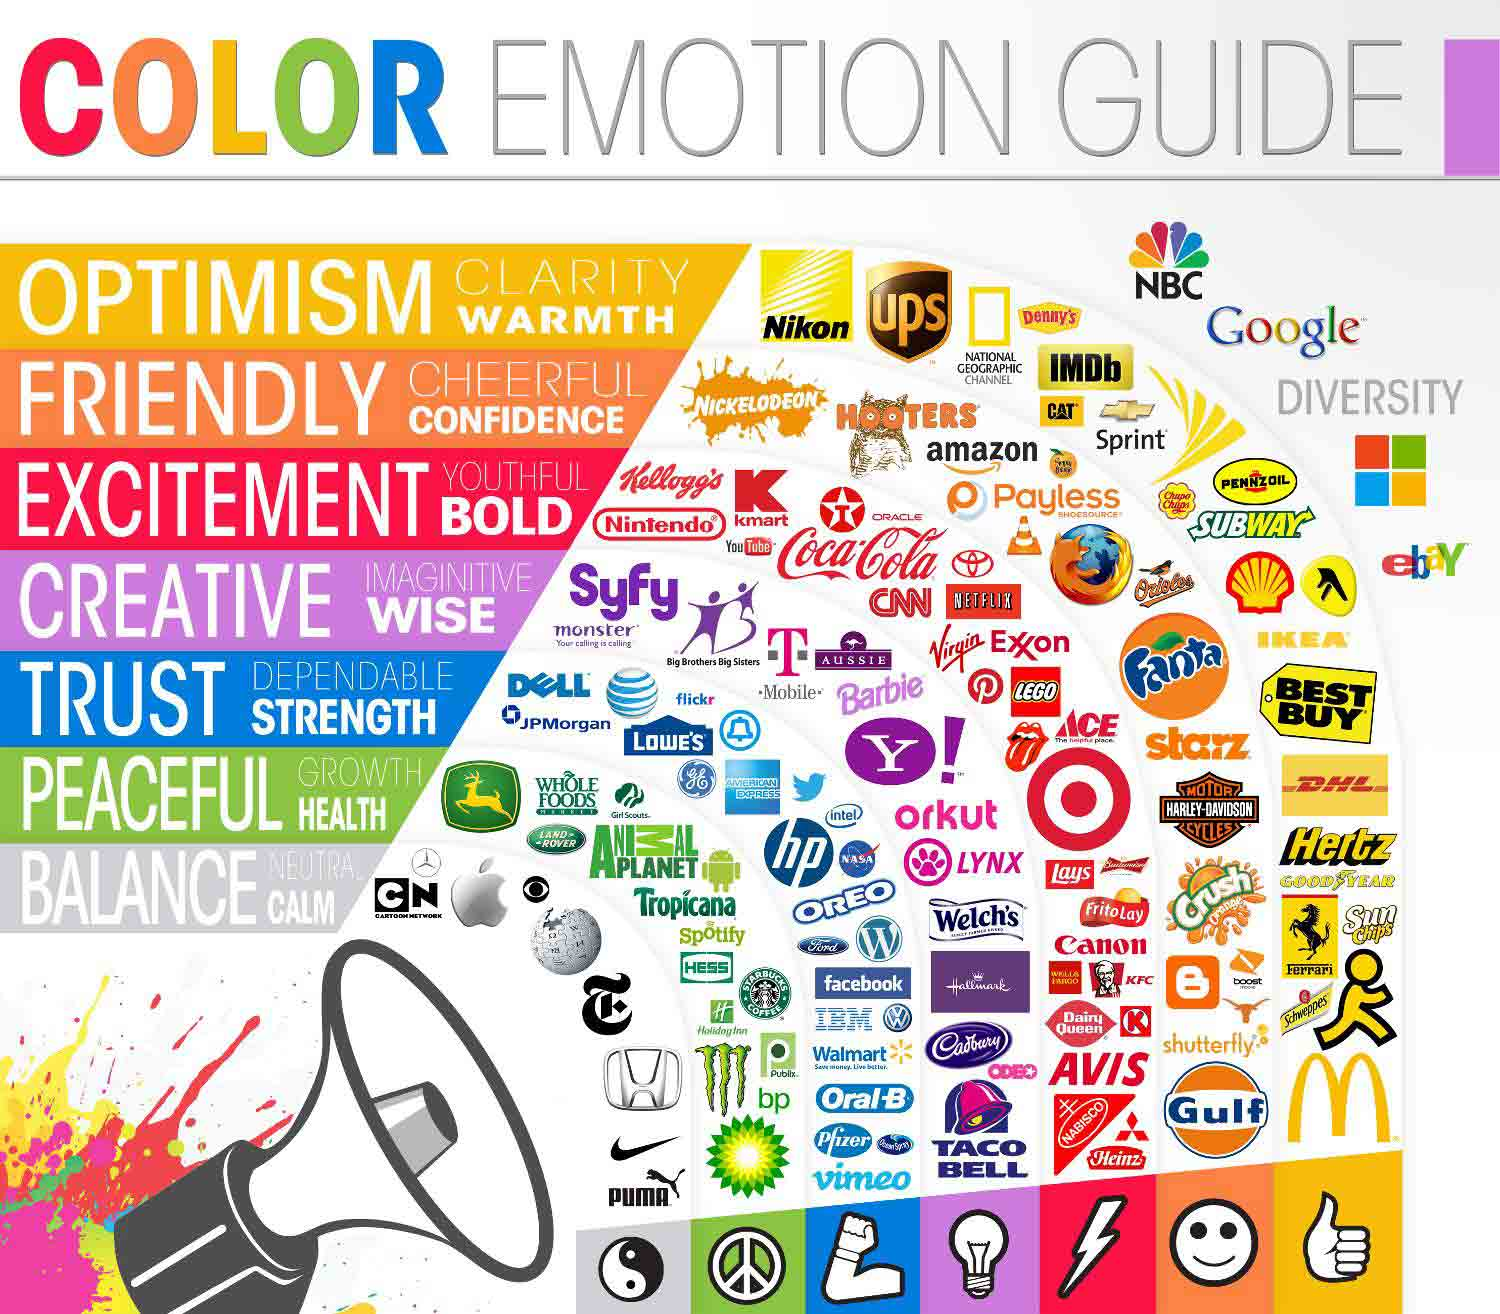 Colour Emotion Guide - Evans Graphics